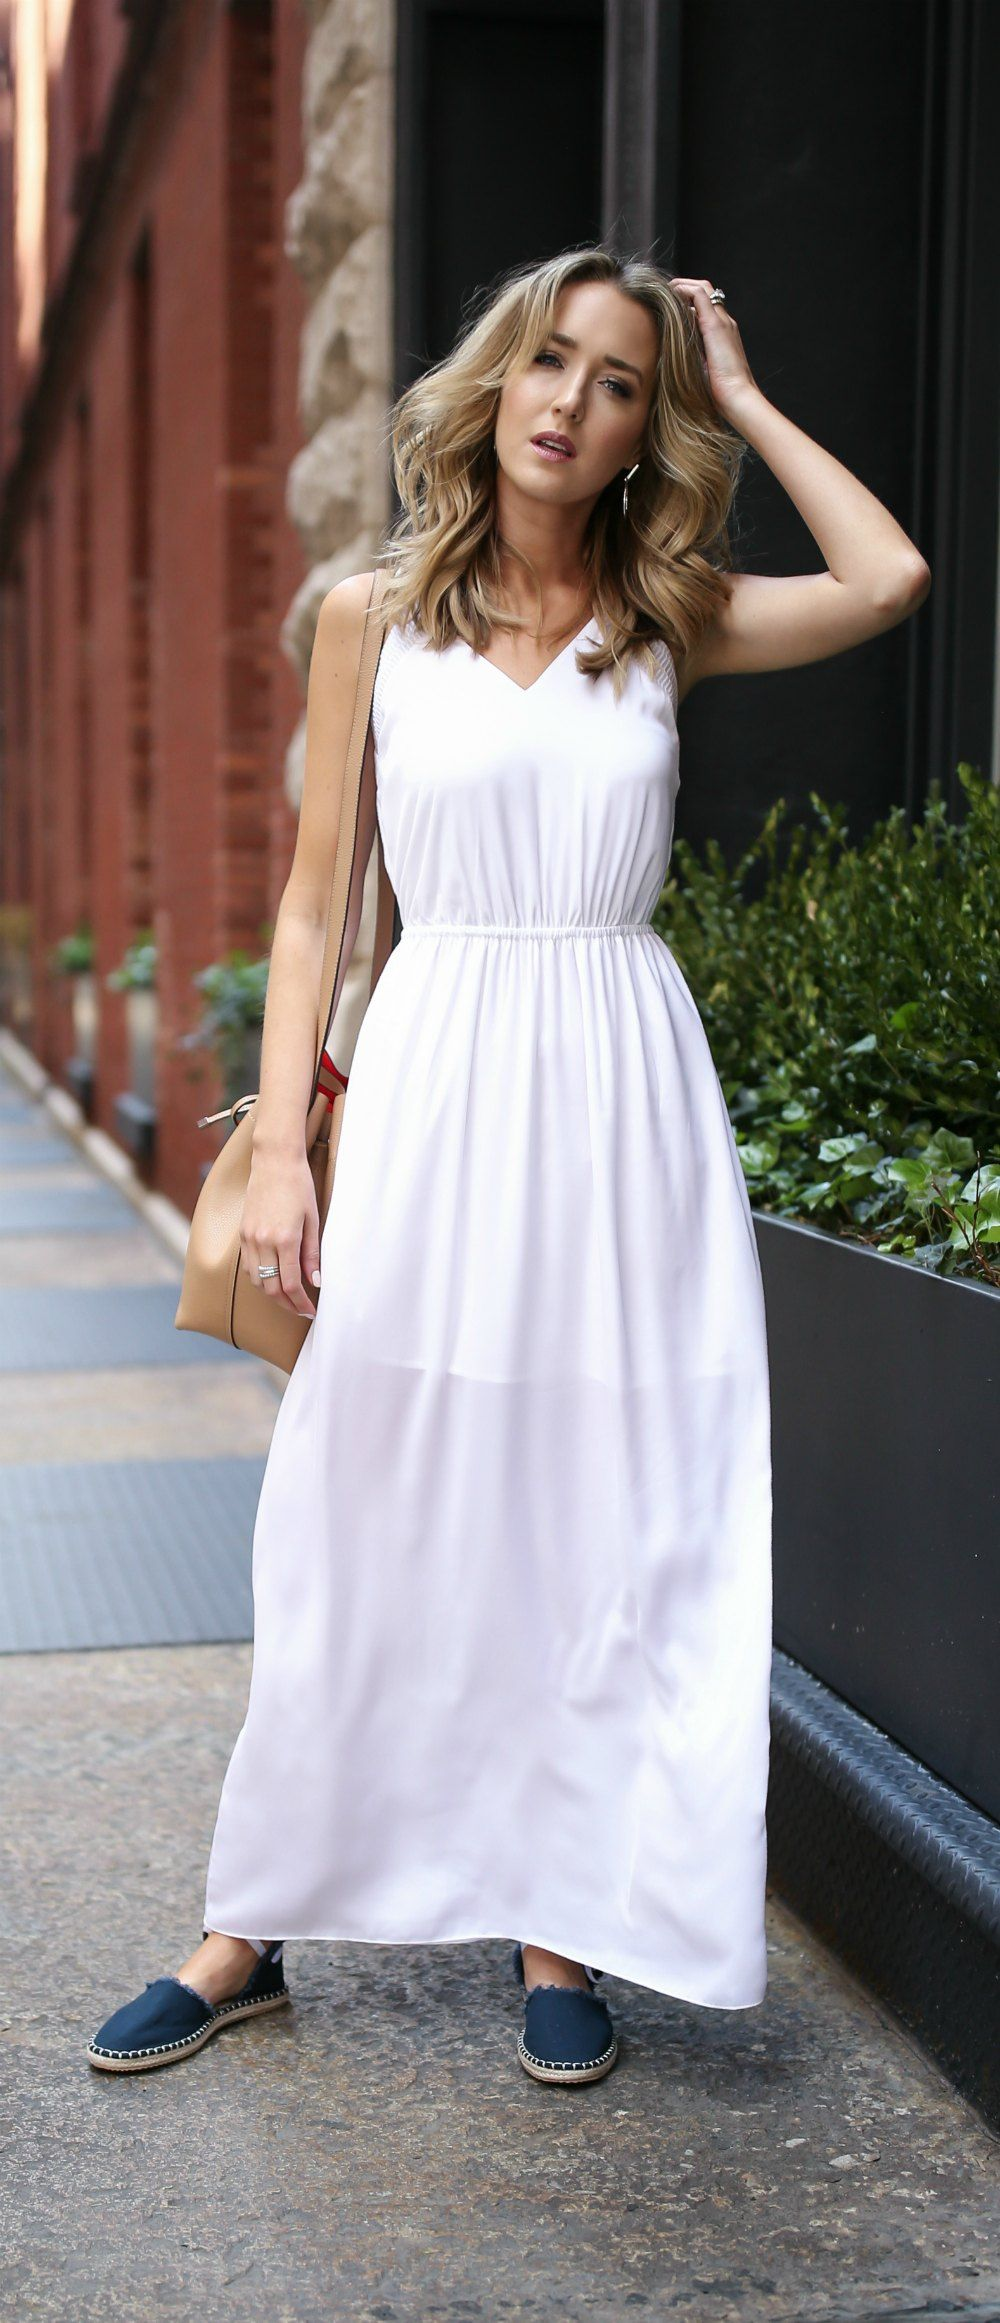 The summer wardrobe staples you need simple white maxi dress